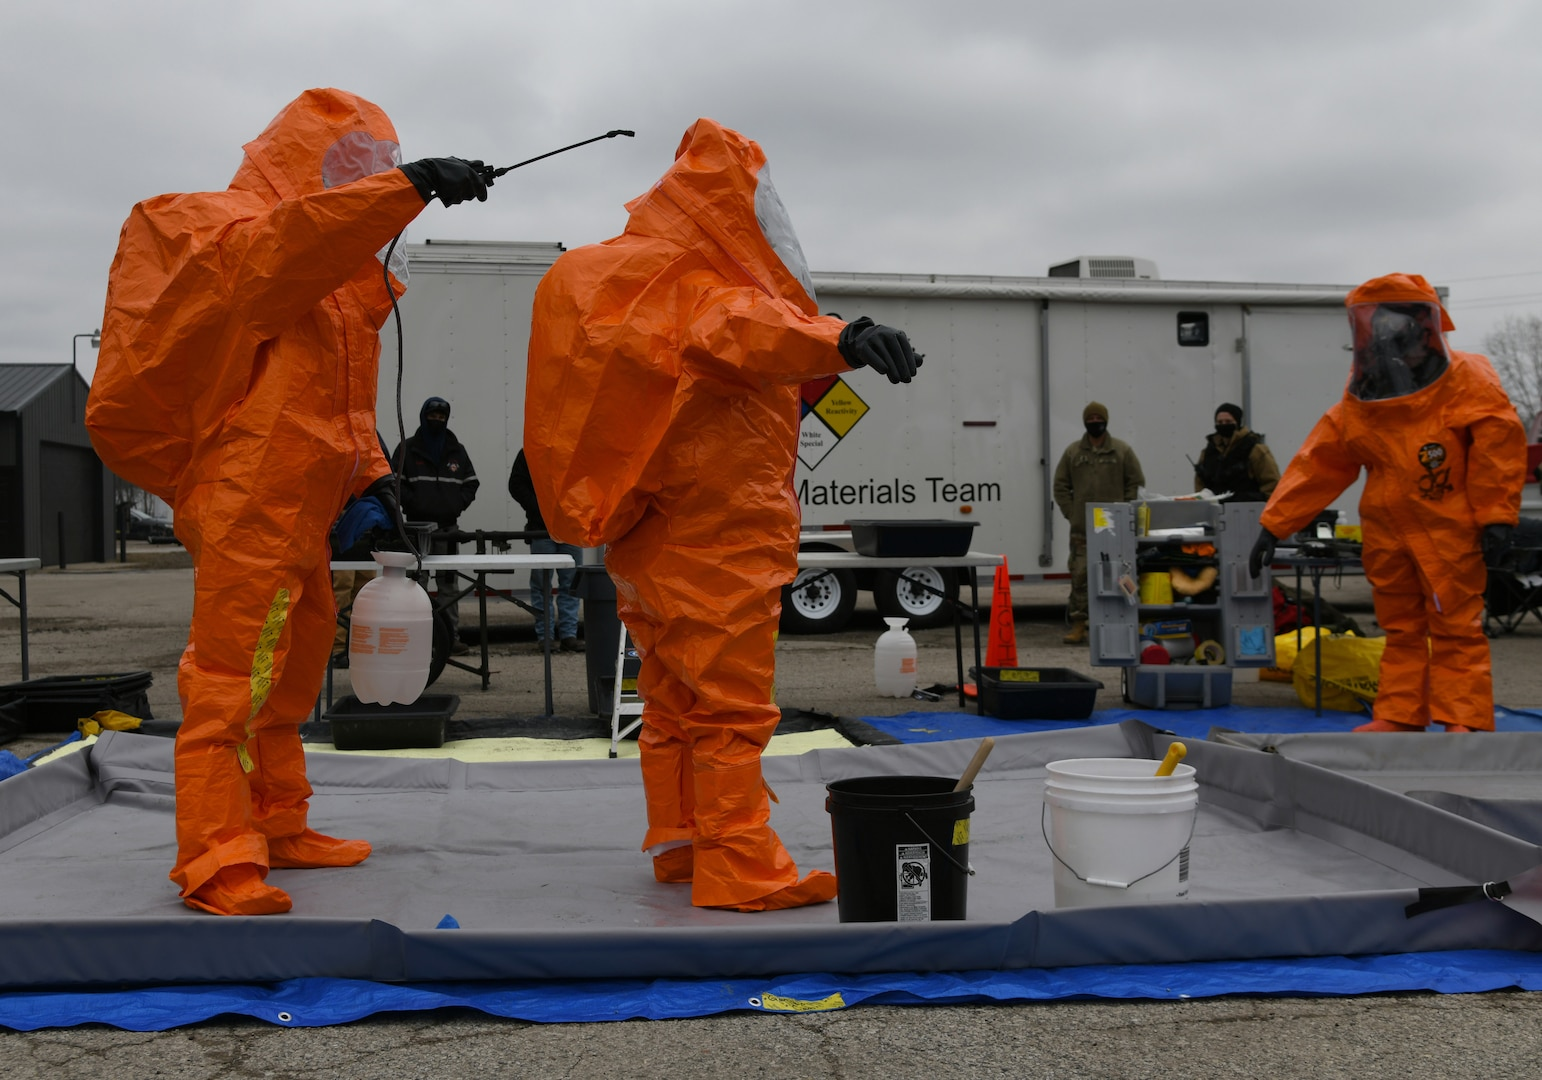 Members of the Michigan National Guard's 51st Civil Support Team run through decontamination procedures during Northern Exposure 21, March 16, 2021, at Mount Pleasant, Michigan. Northern Exposure 21 was integrated with another exercise known as Rising Waters 2021. This year's scenario was catastrophic flooding leading to chemical contamination, which was followed by a possible WMD situation.